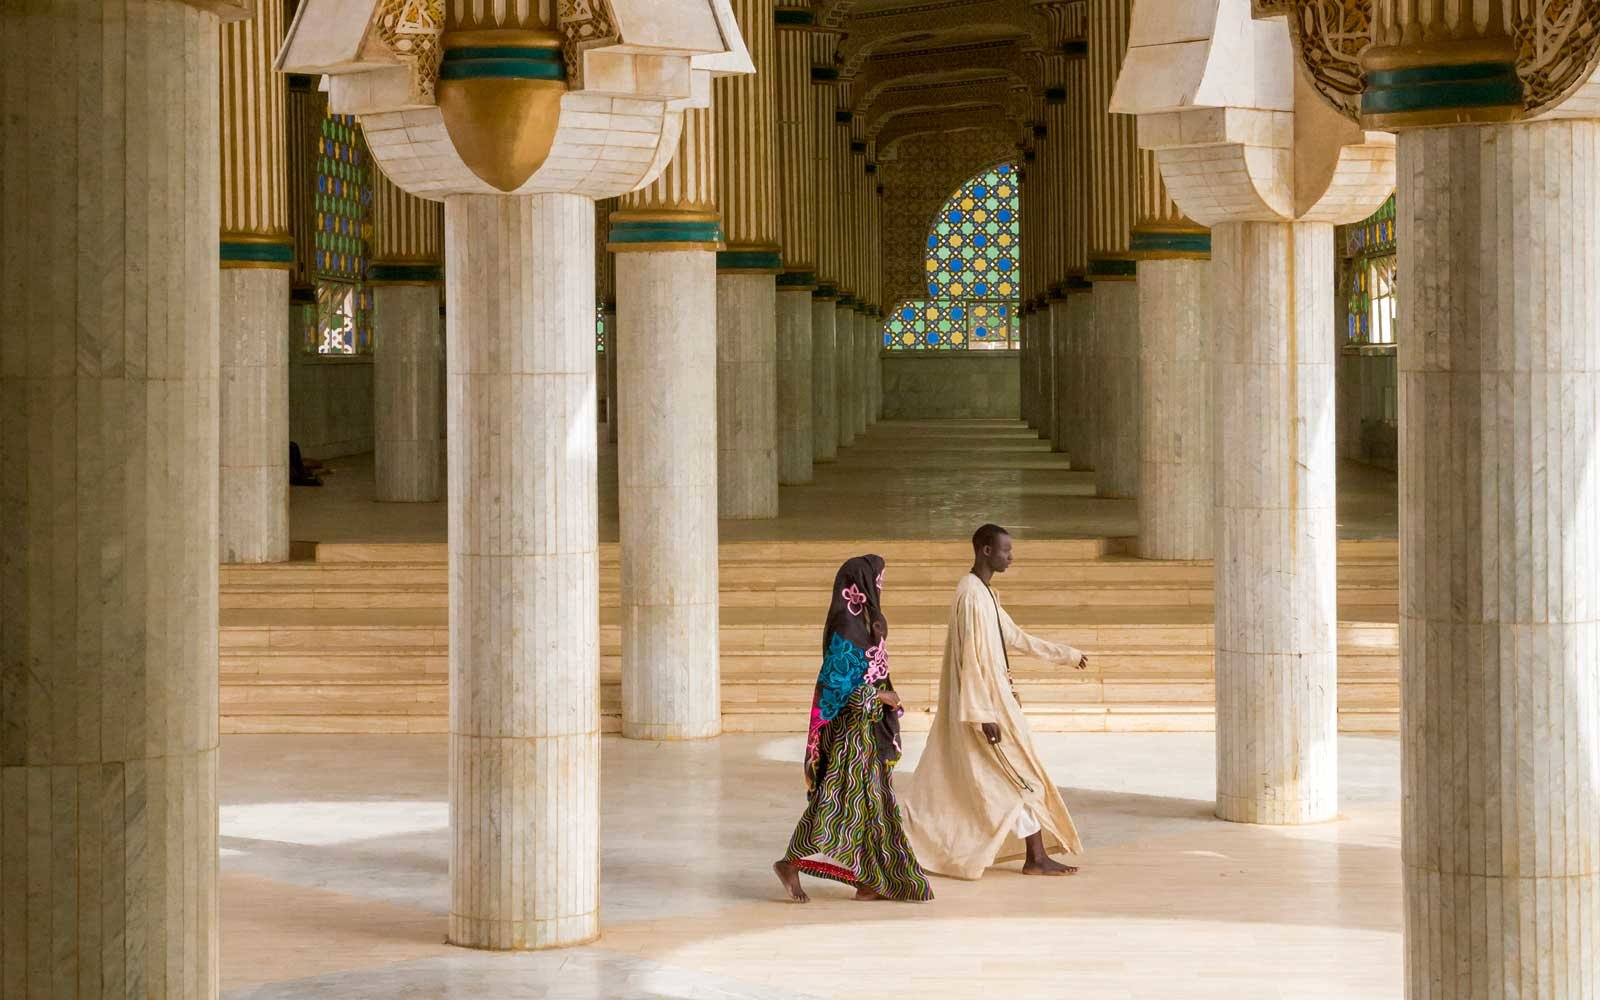 Walking to prayer at the Grand Mosque in Touba, Senegal